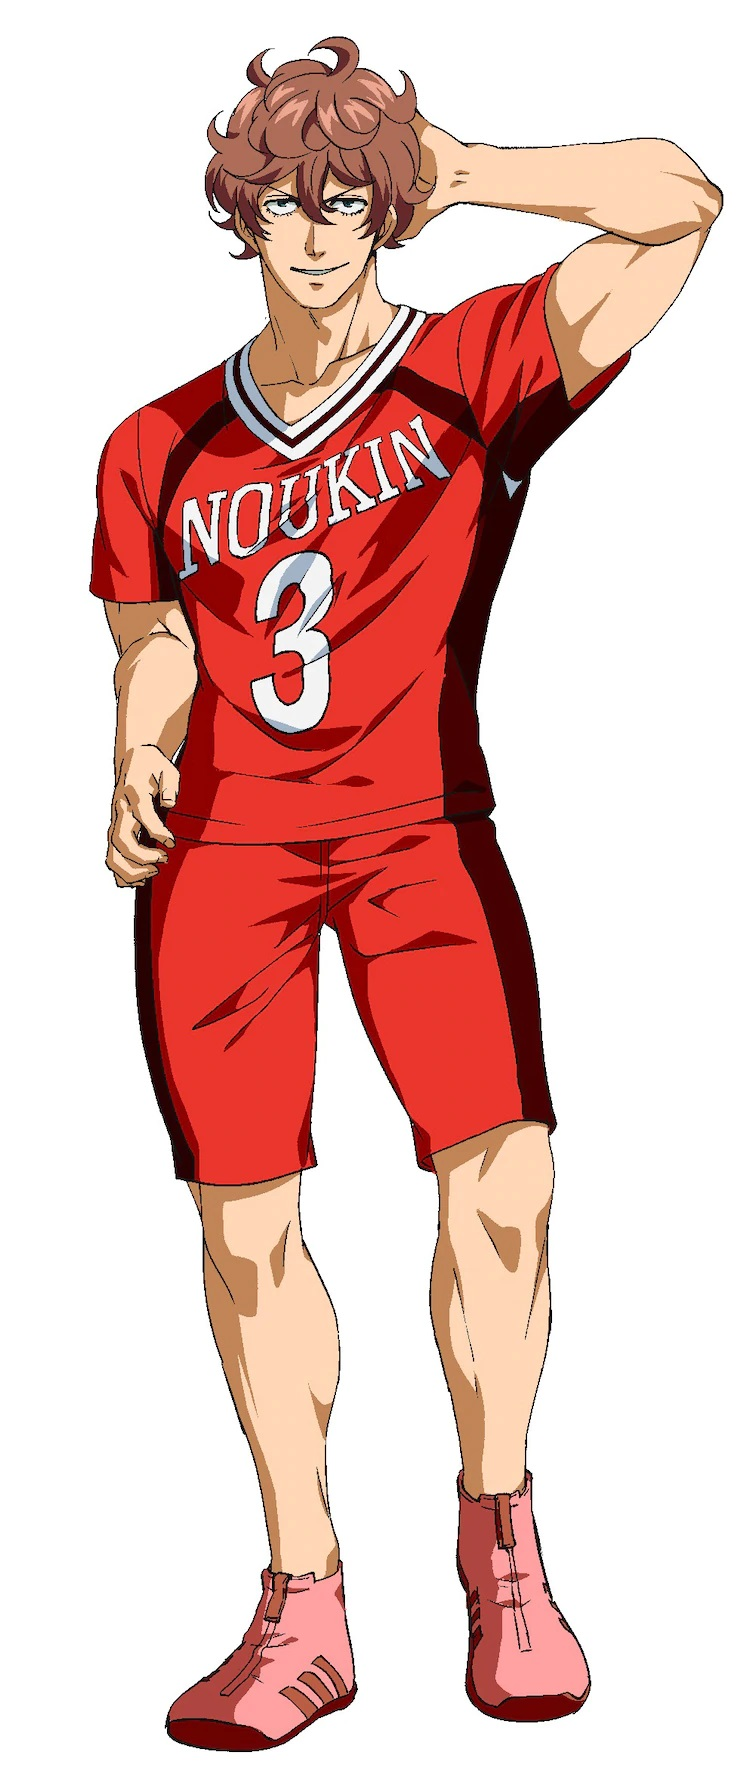 A character setting of Kyouhei Misumi, a former delinquent turned member of the Noukin High School kabaddi club, from the upcoming Burning Kabaddi TV anime.